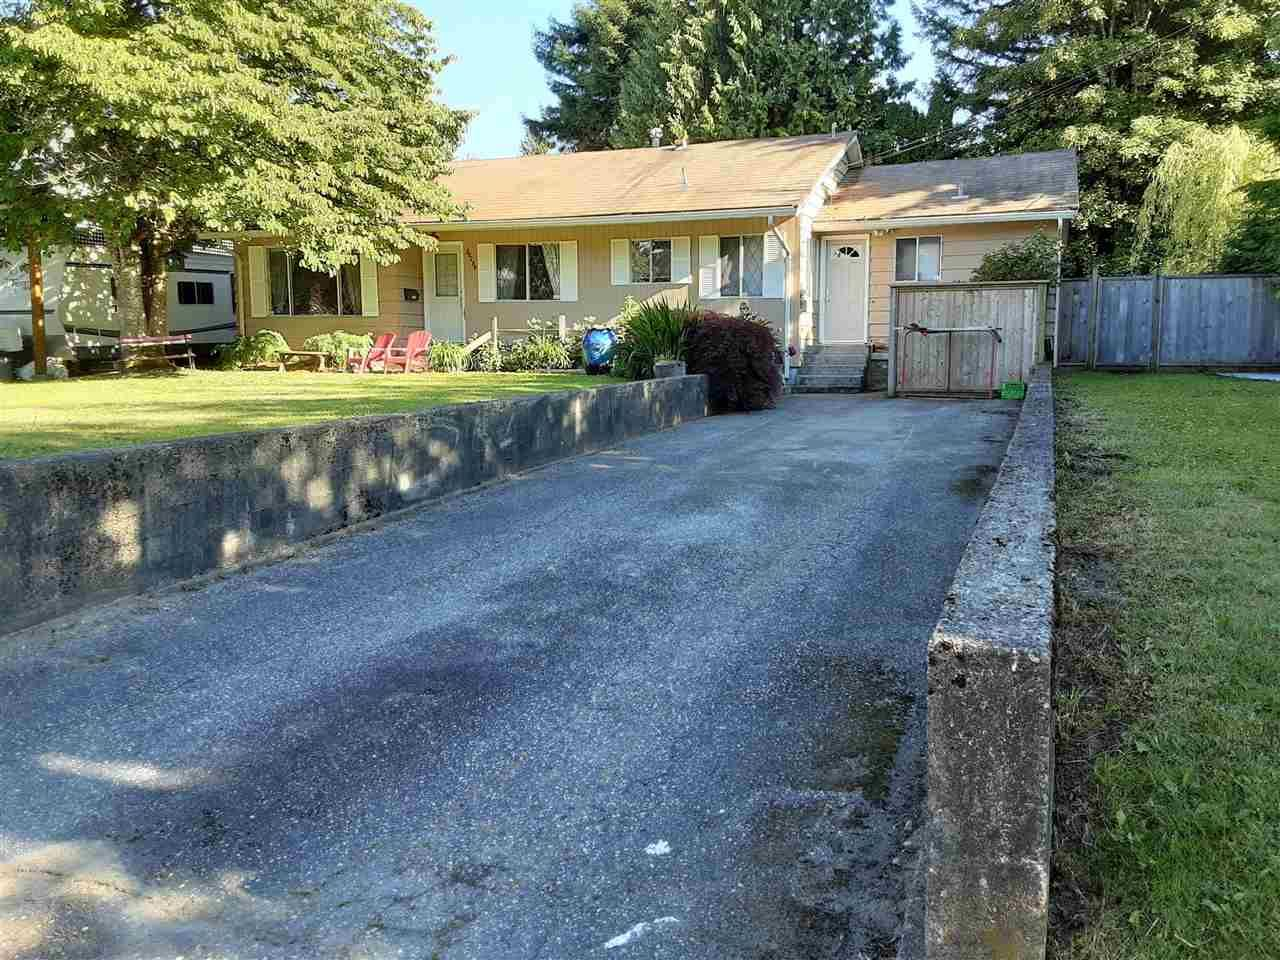 """Main Photo: 20280 50 Avenue in Langley: Langley City House for sale in """"SUNDELL GARDENS"""" : MLS®# R2581602"""